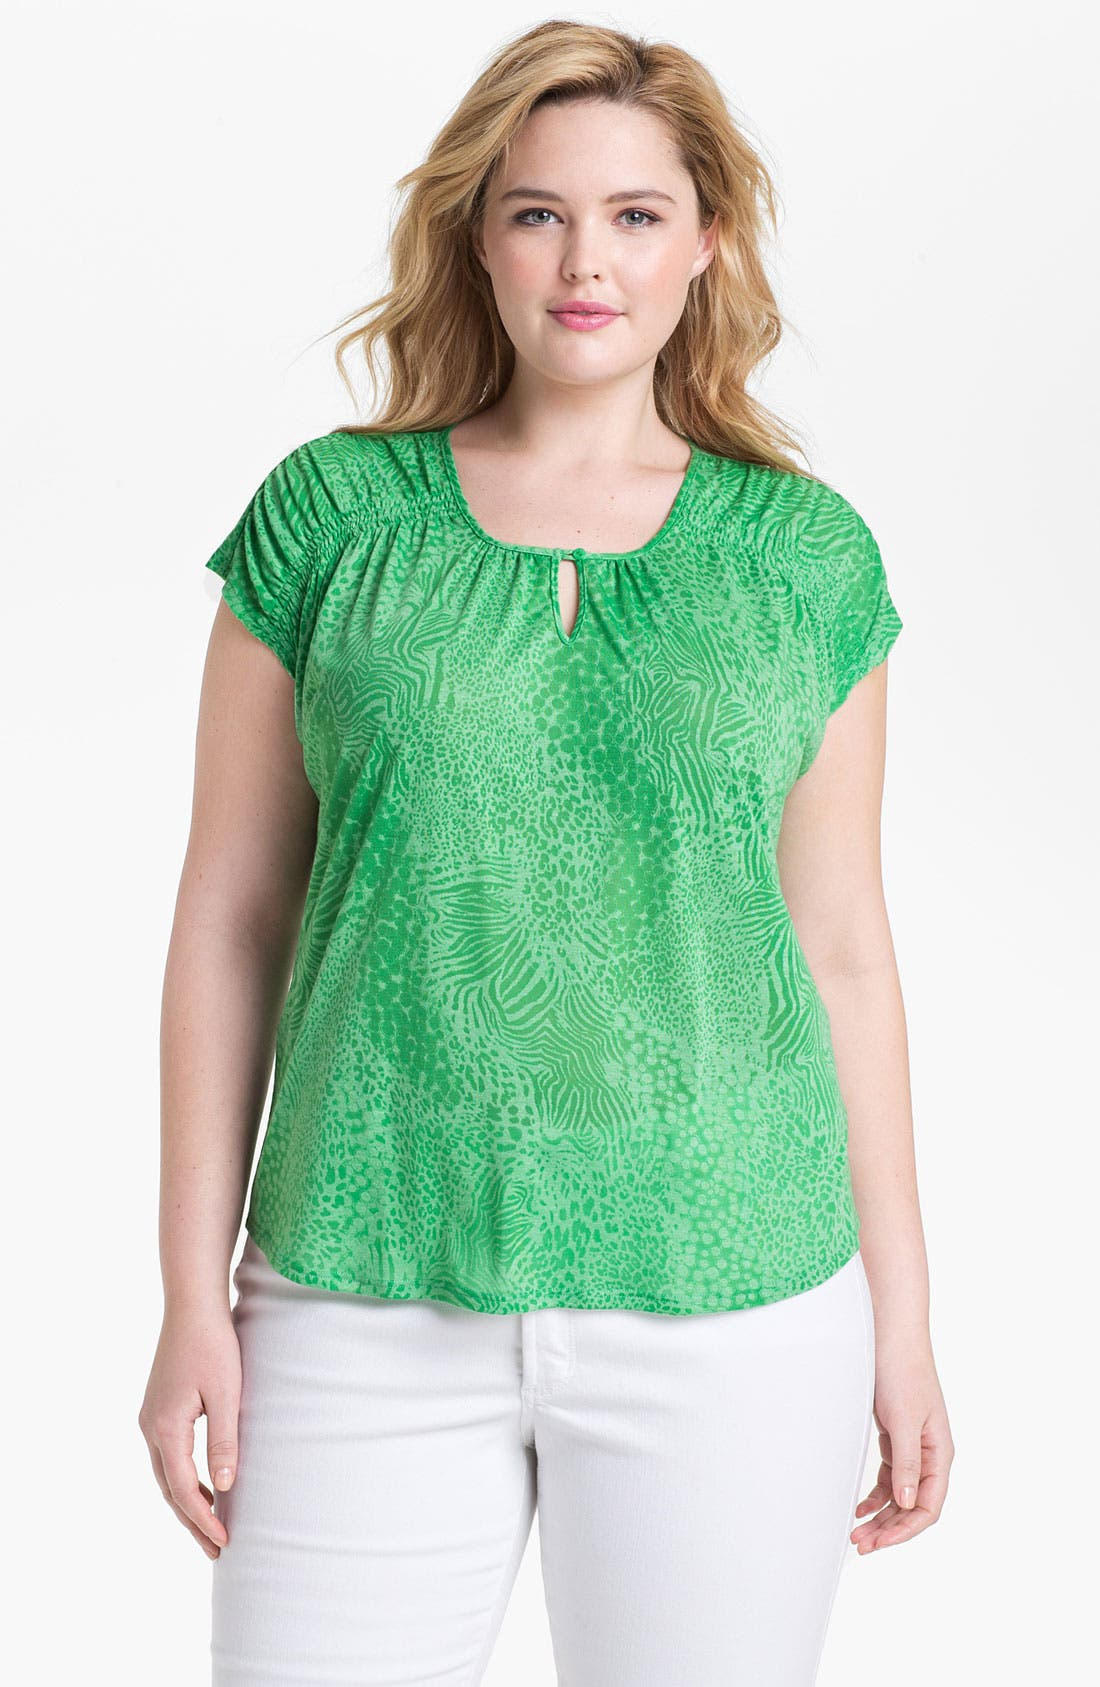 Alternate Image 1 Selected - Sejour Print Jersey Tee (Plus Size)